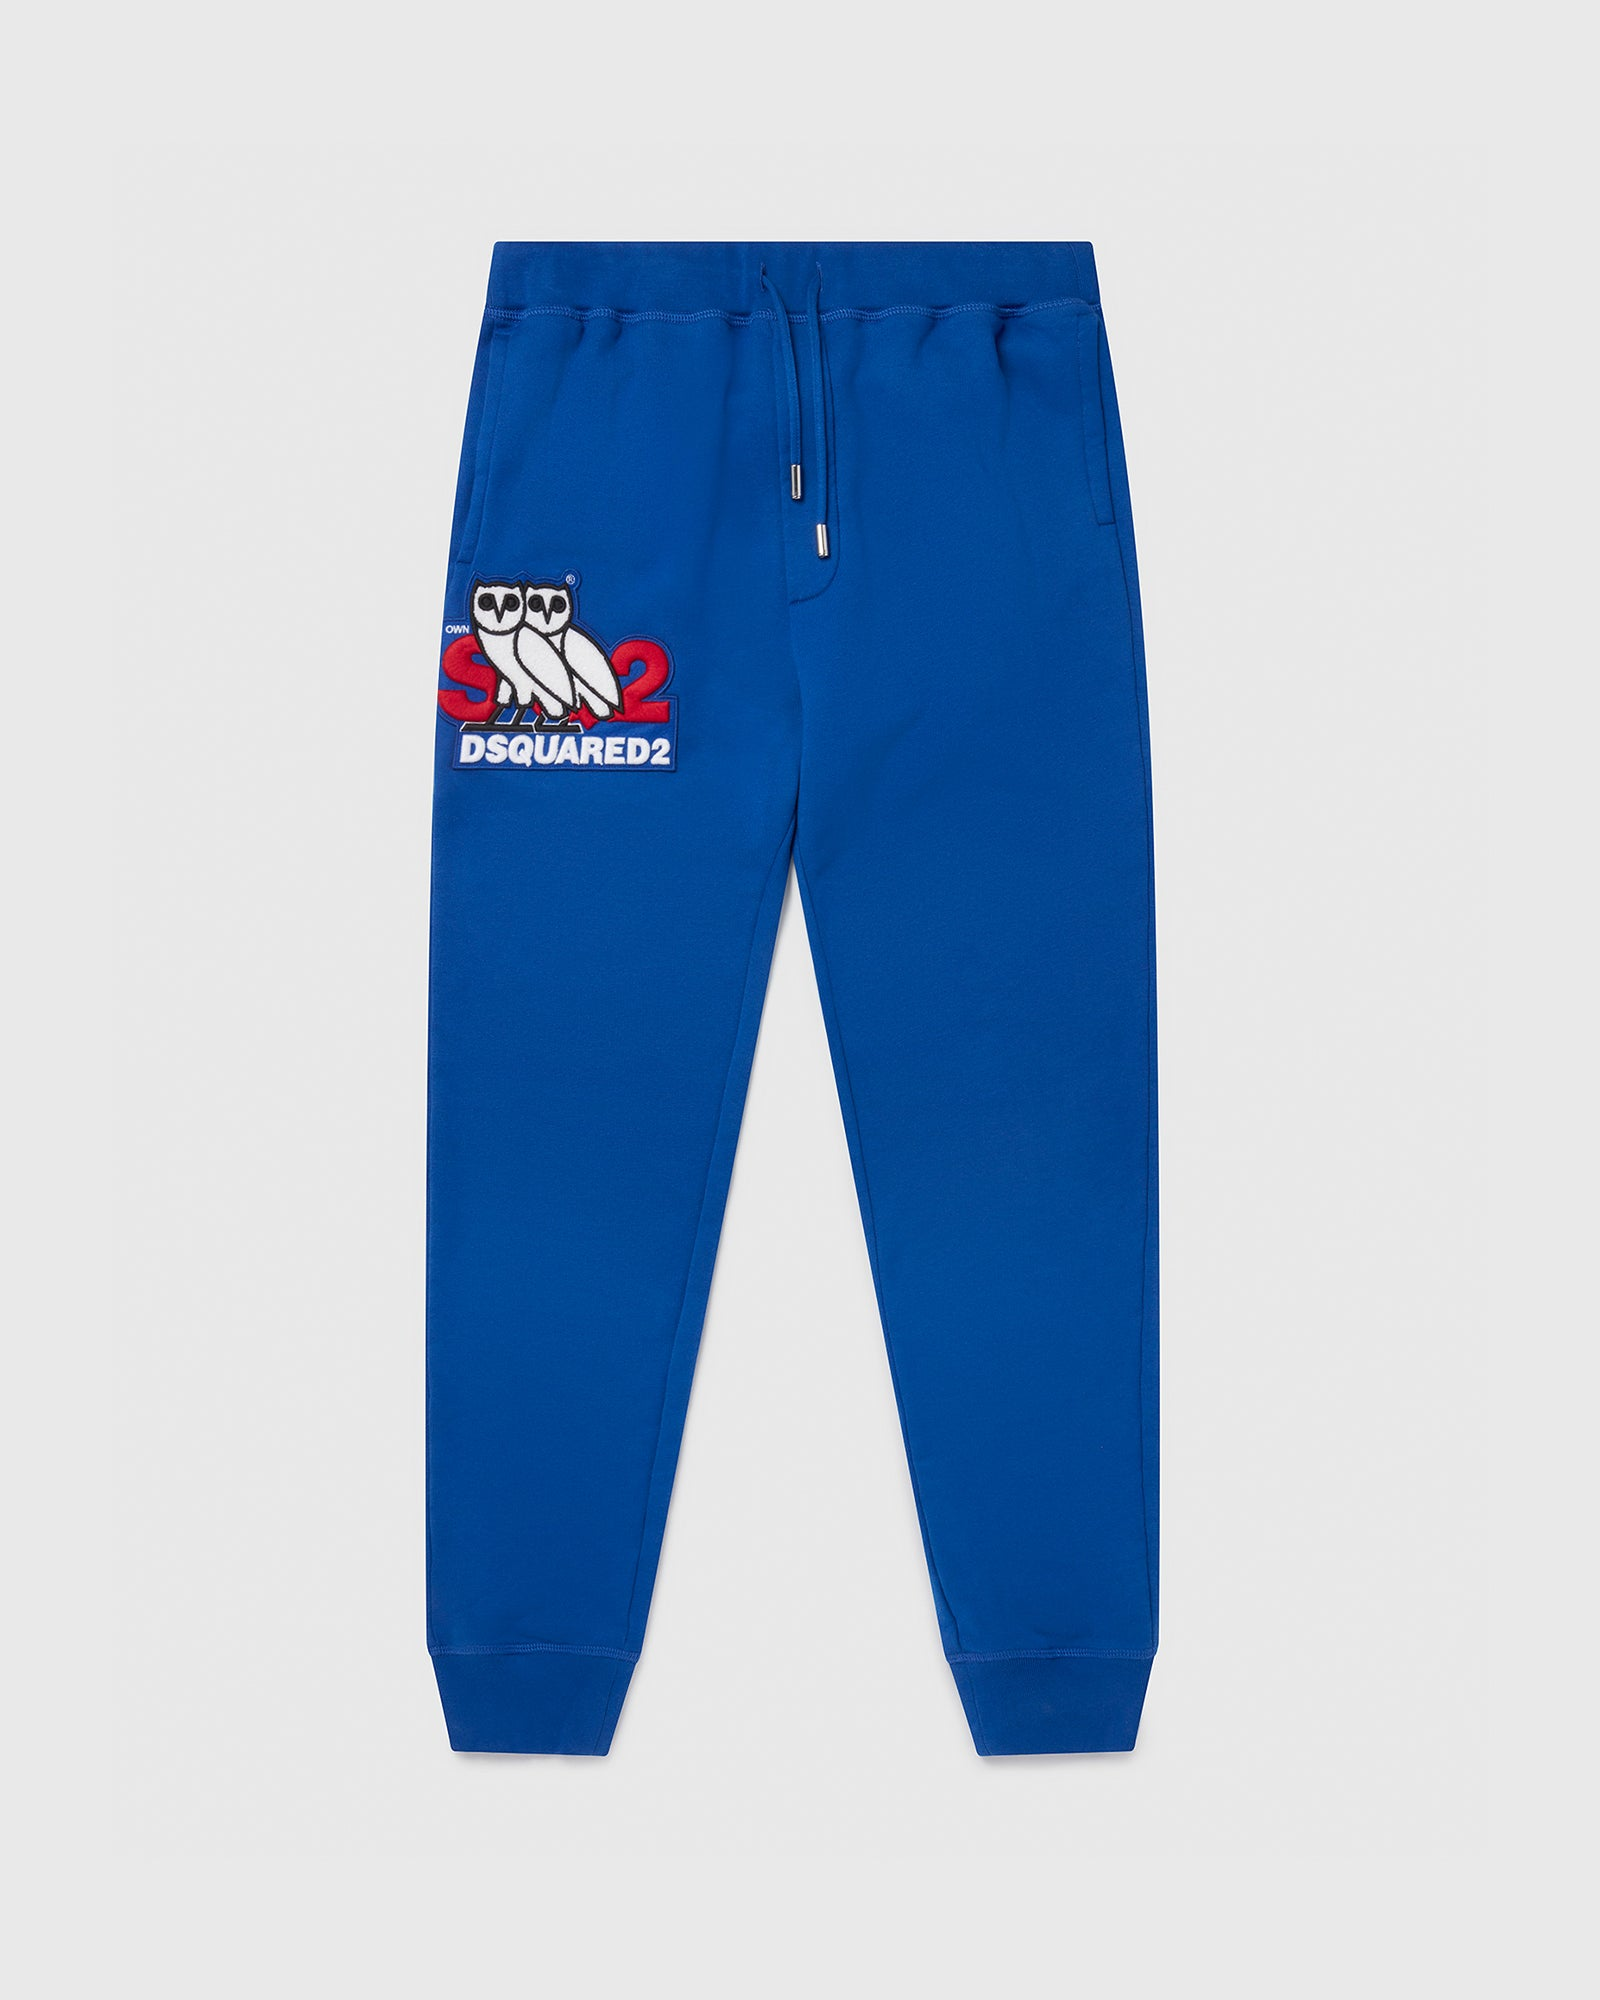 OVO X D2 SWEATPANTS - BLUE IMAGE #1